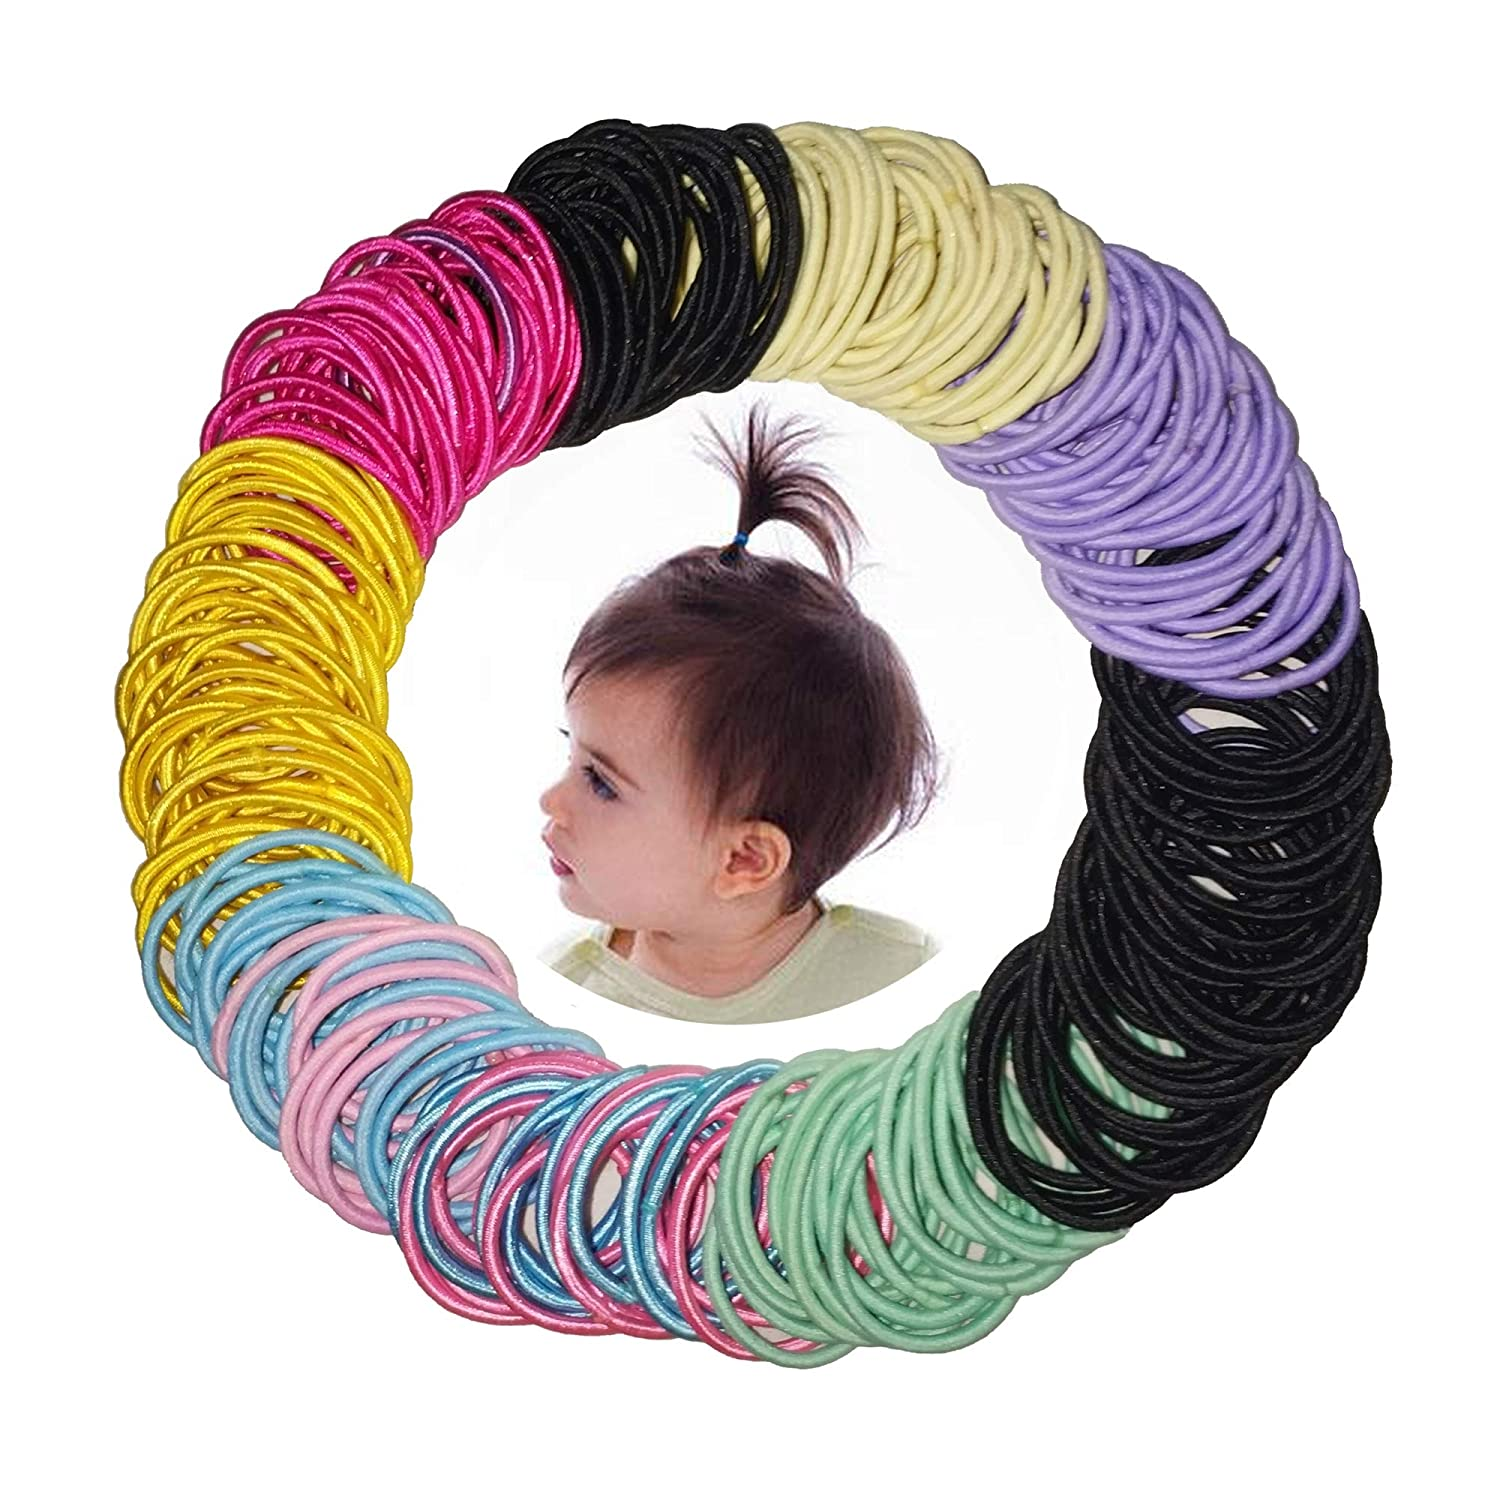 300 Pcs Baby Girls Hair Ties - Small Size Elastic Hair Ties for Baby Girls Infants Toddlers Multicolor Hair Bands Elastic Ponytail Holder